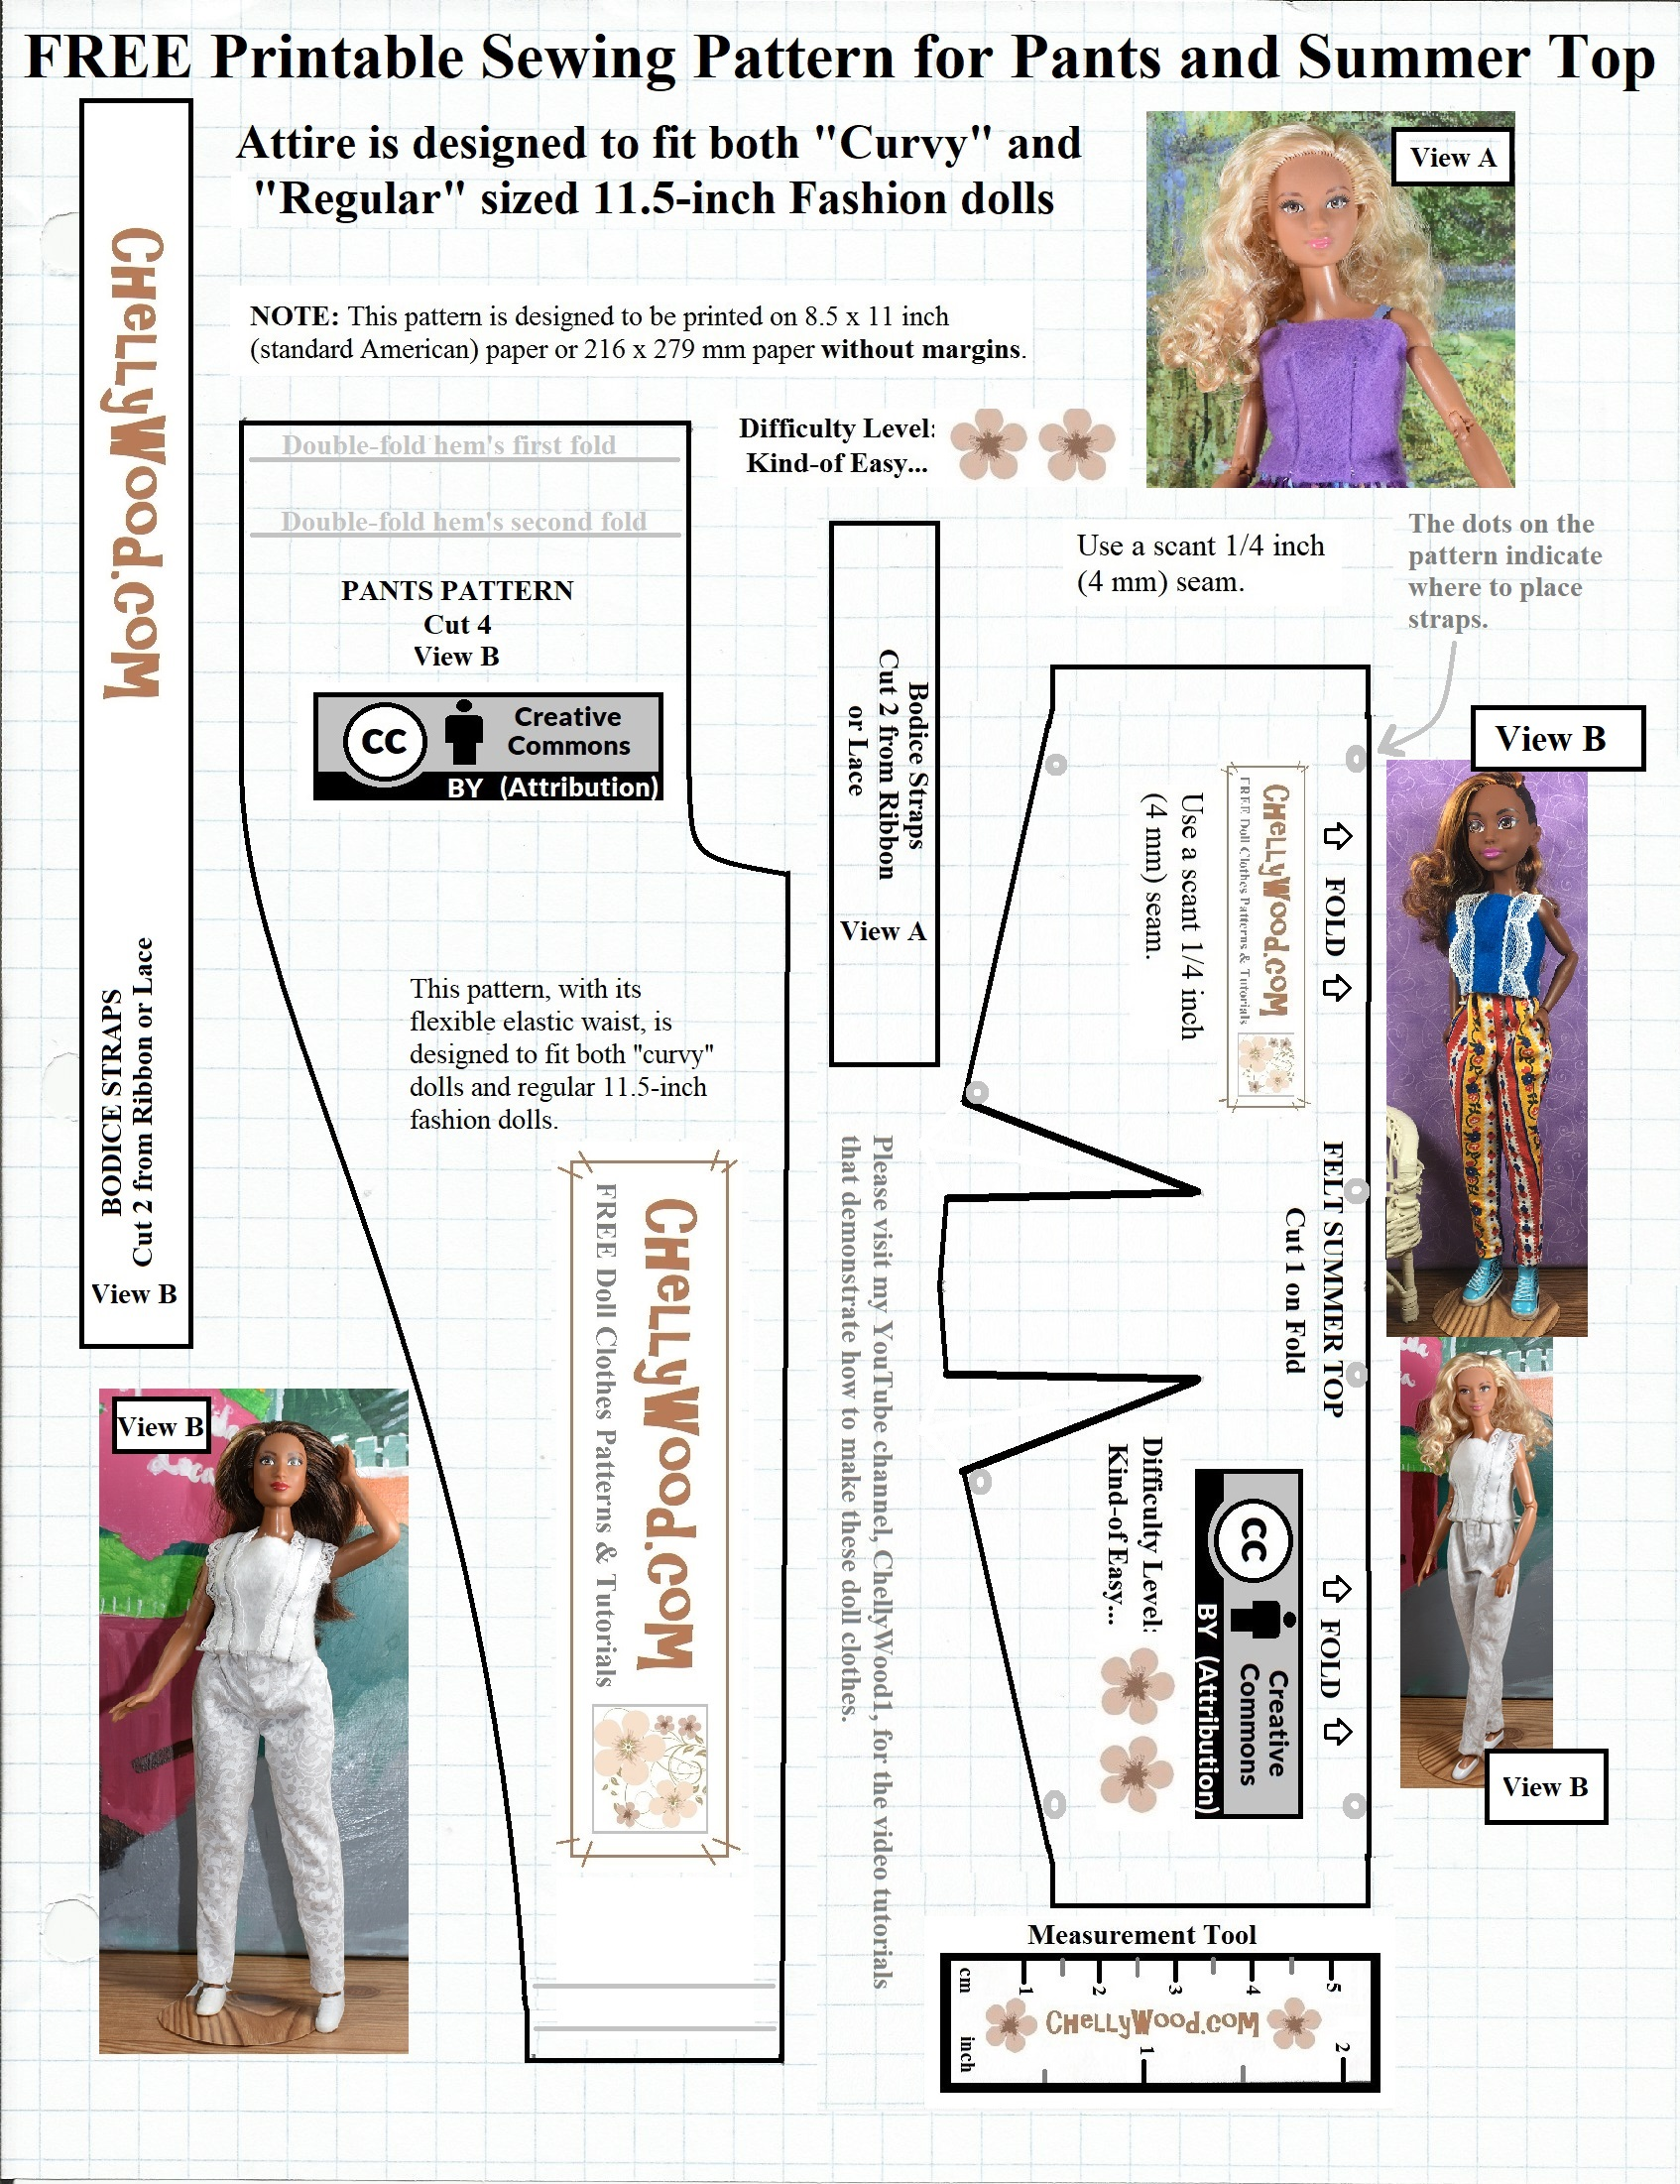 Free Sew Pattern For Dolls Pants Comes W This Easydiy Tutorial Free Printable Doll